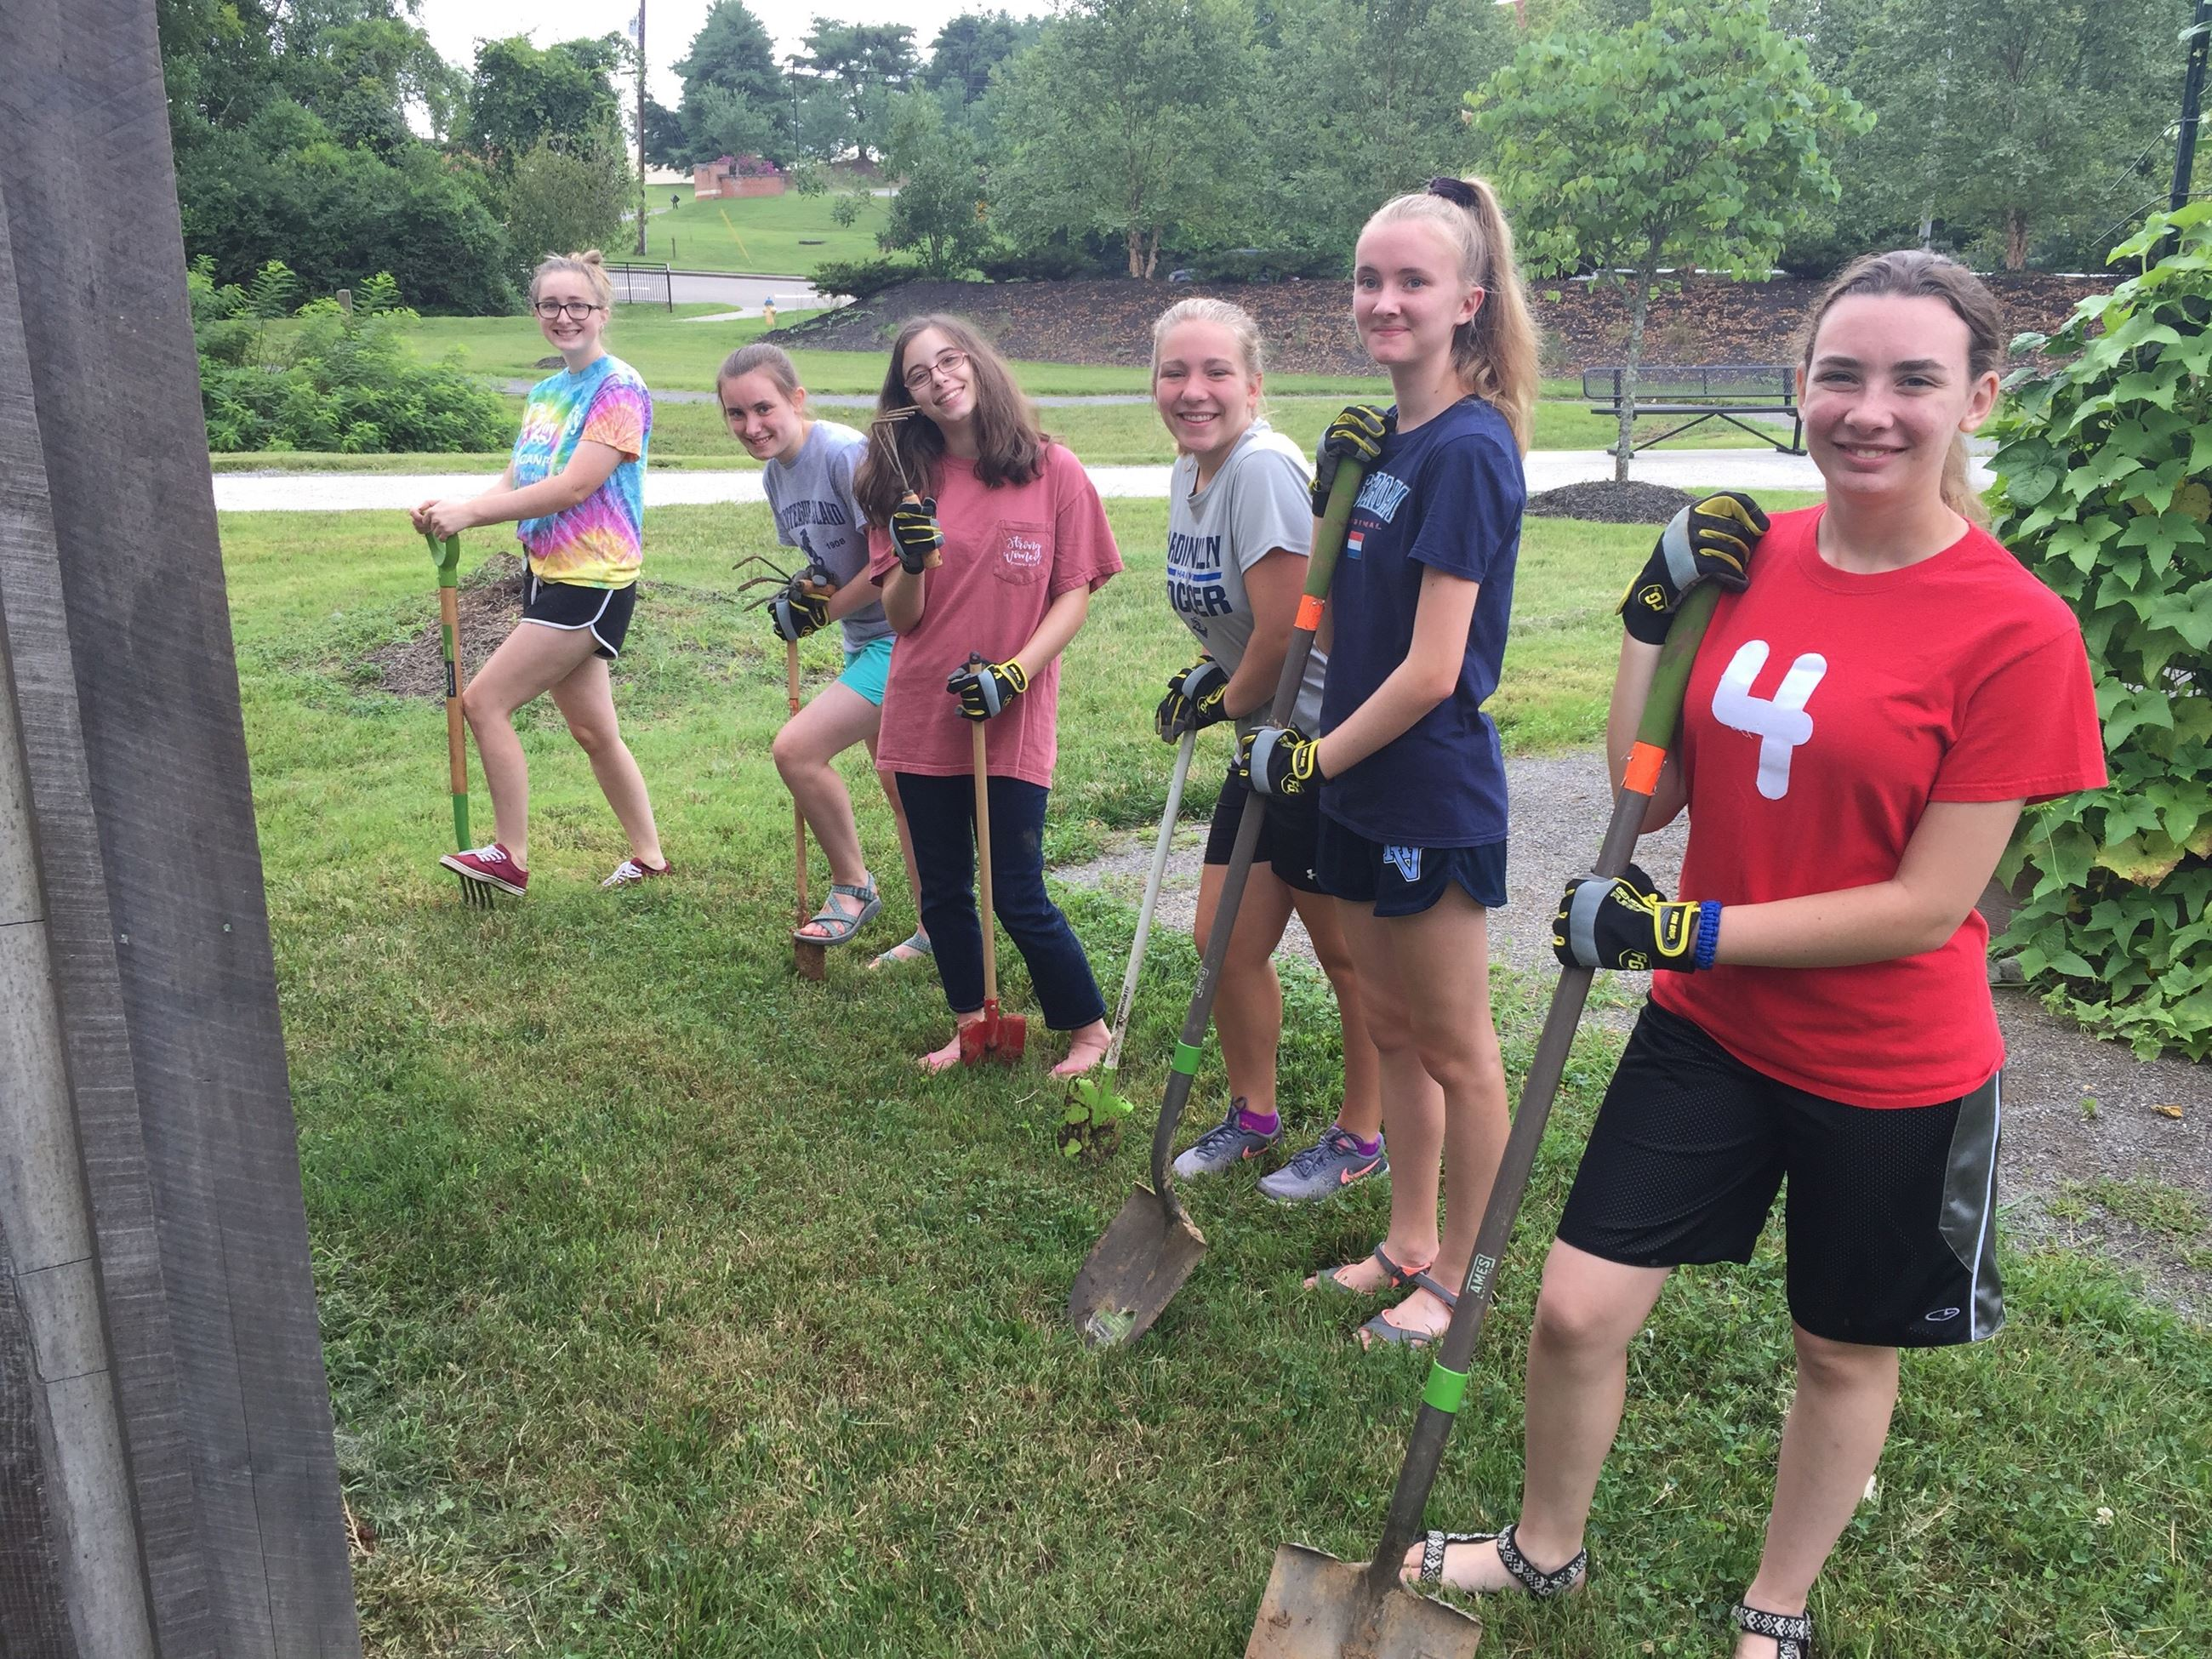 group of young girls with shovels